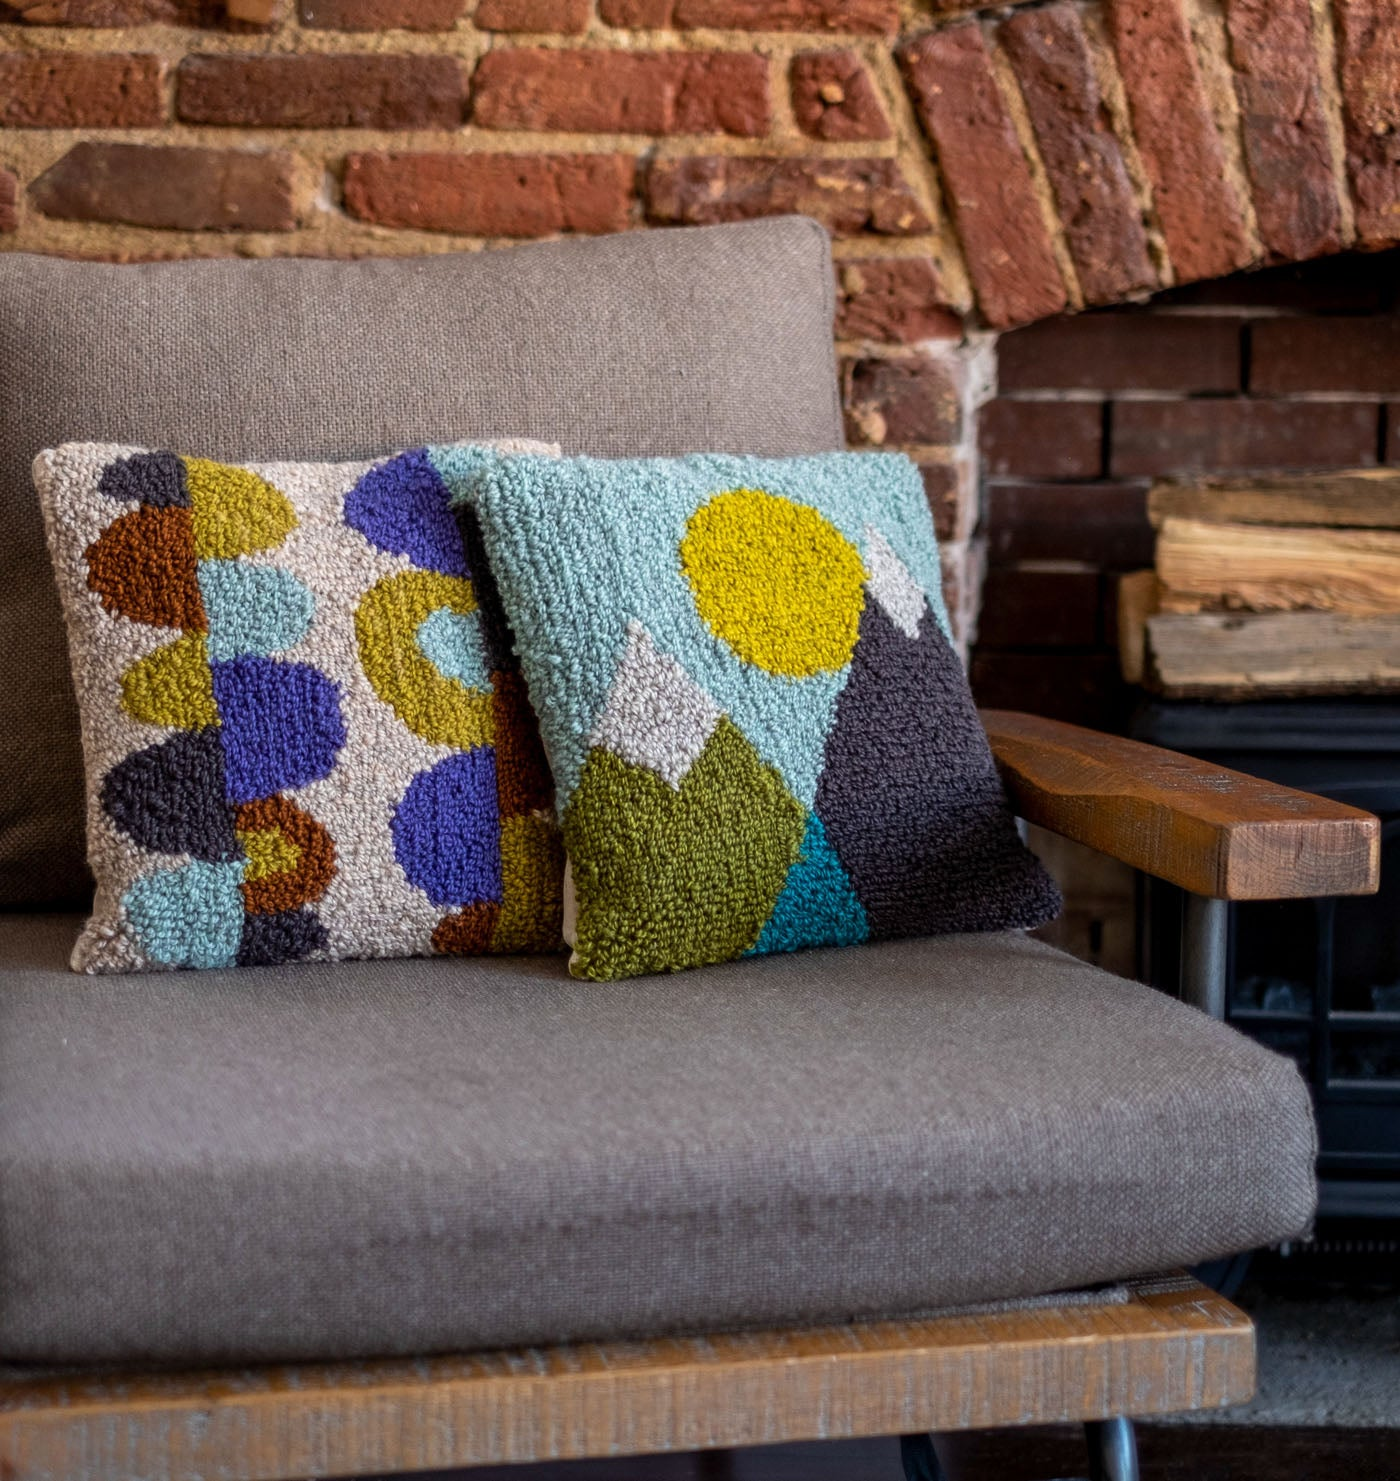 Two punch needle throw pillows on a chair near a brick fireplace